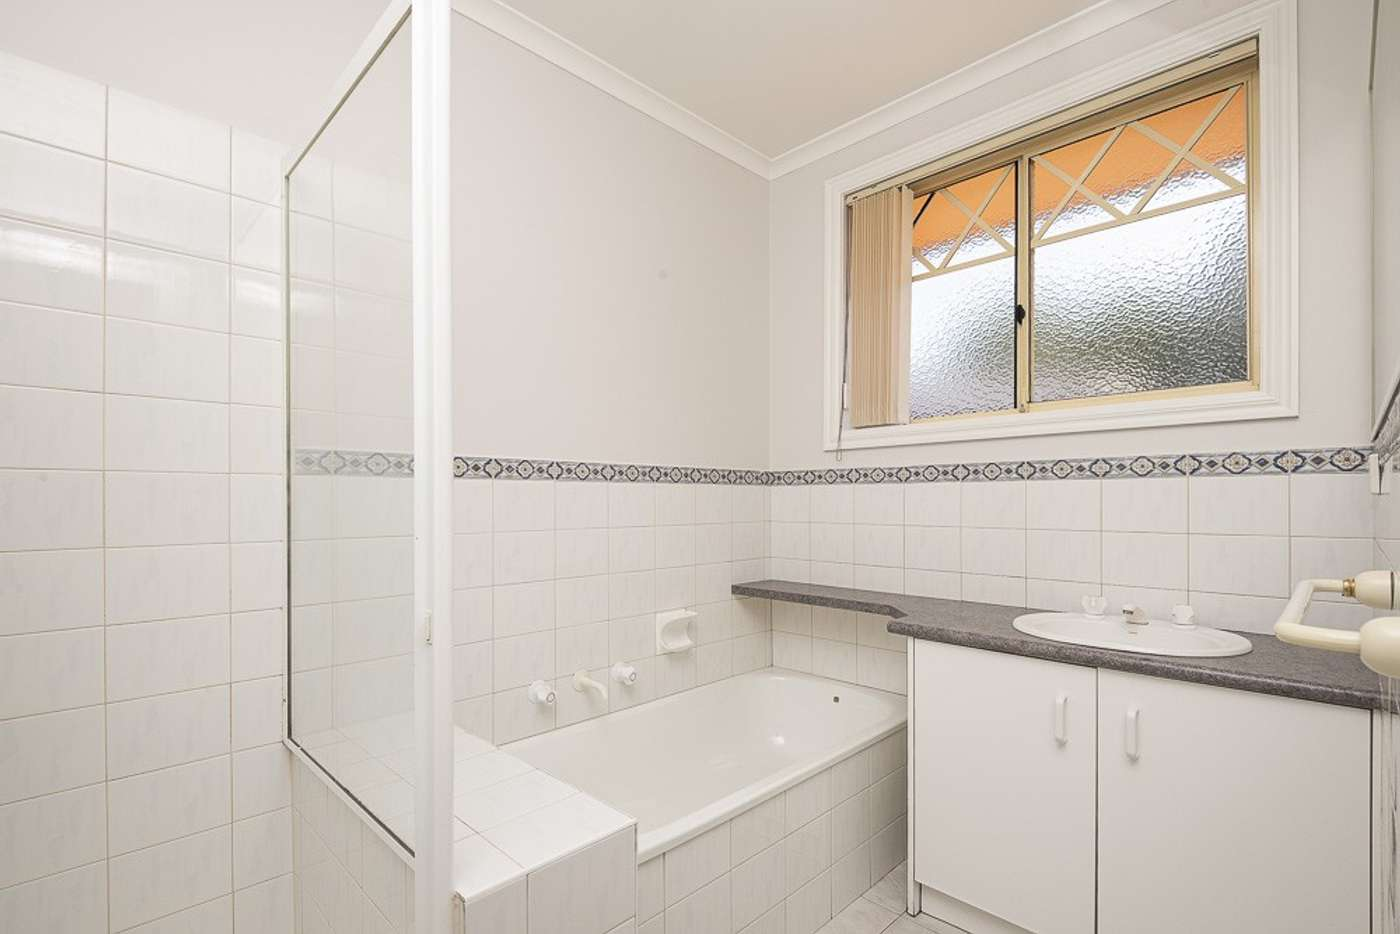 Sixth view of Homely unit listing, 2/40 Woodland Street, Strathmore VIC 3041